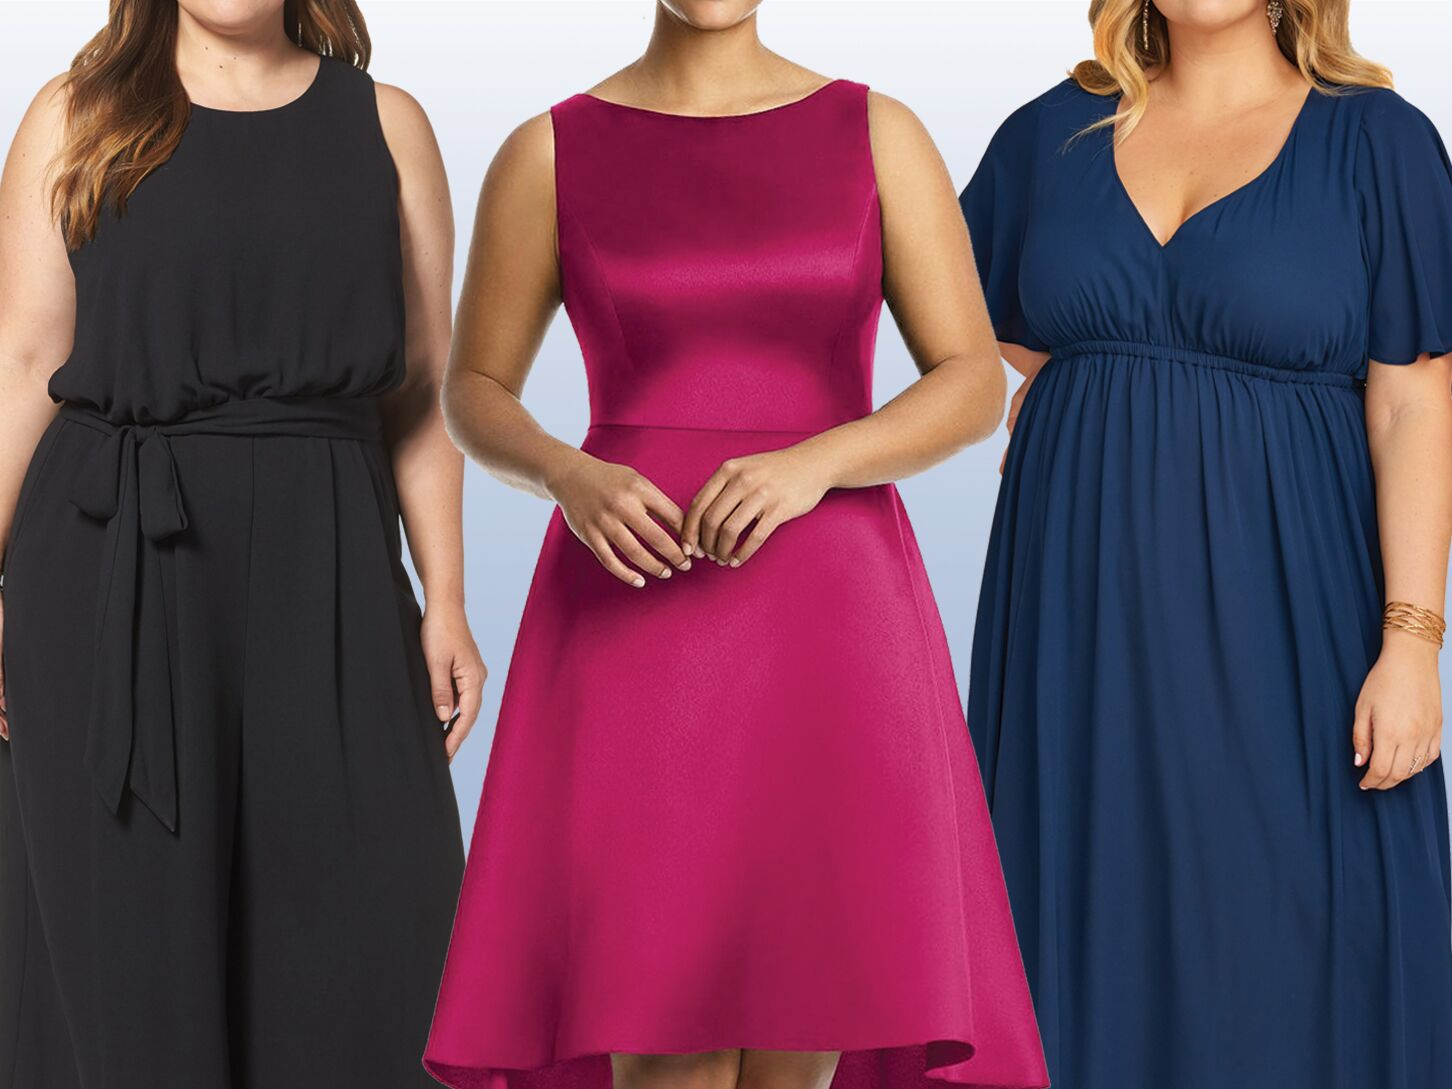 51ae66b147db 40 Plus-Size Bridesmaid Dresses That Are Truly Stunning